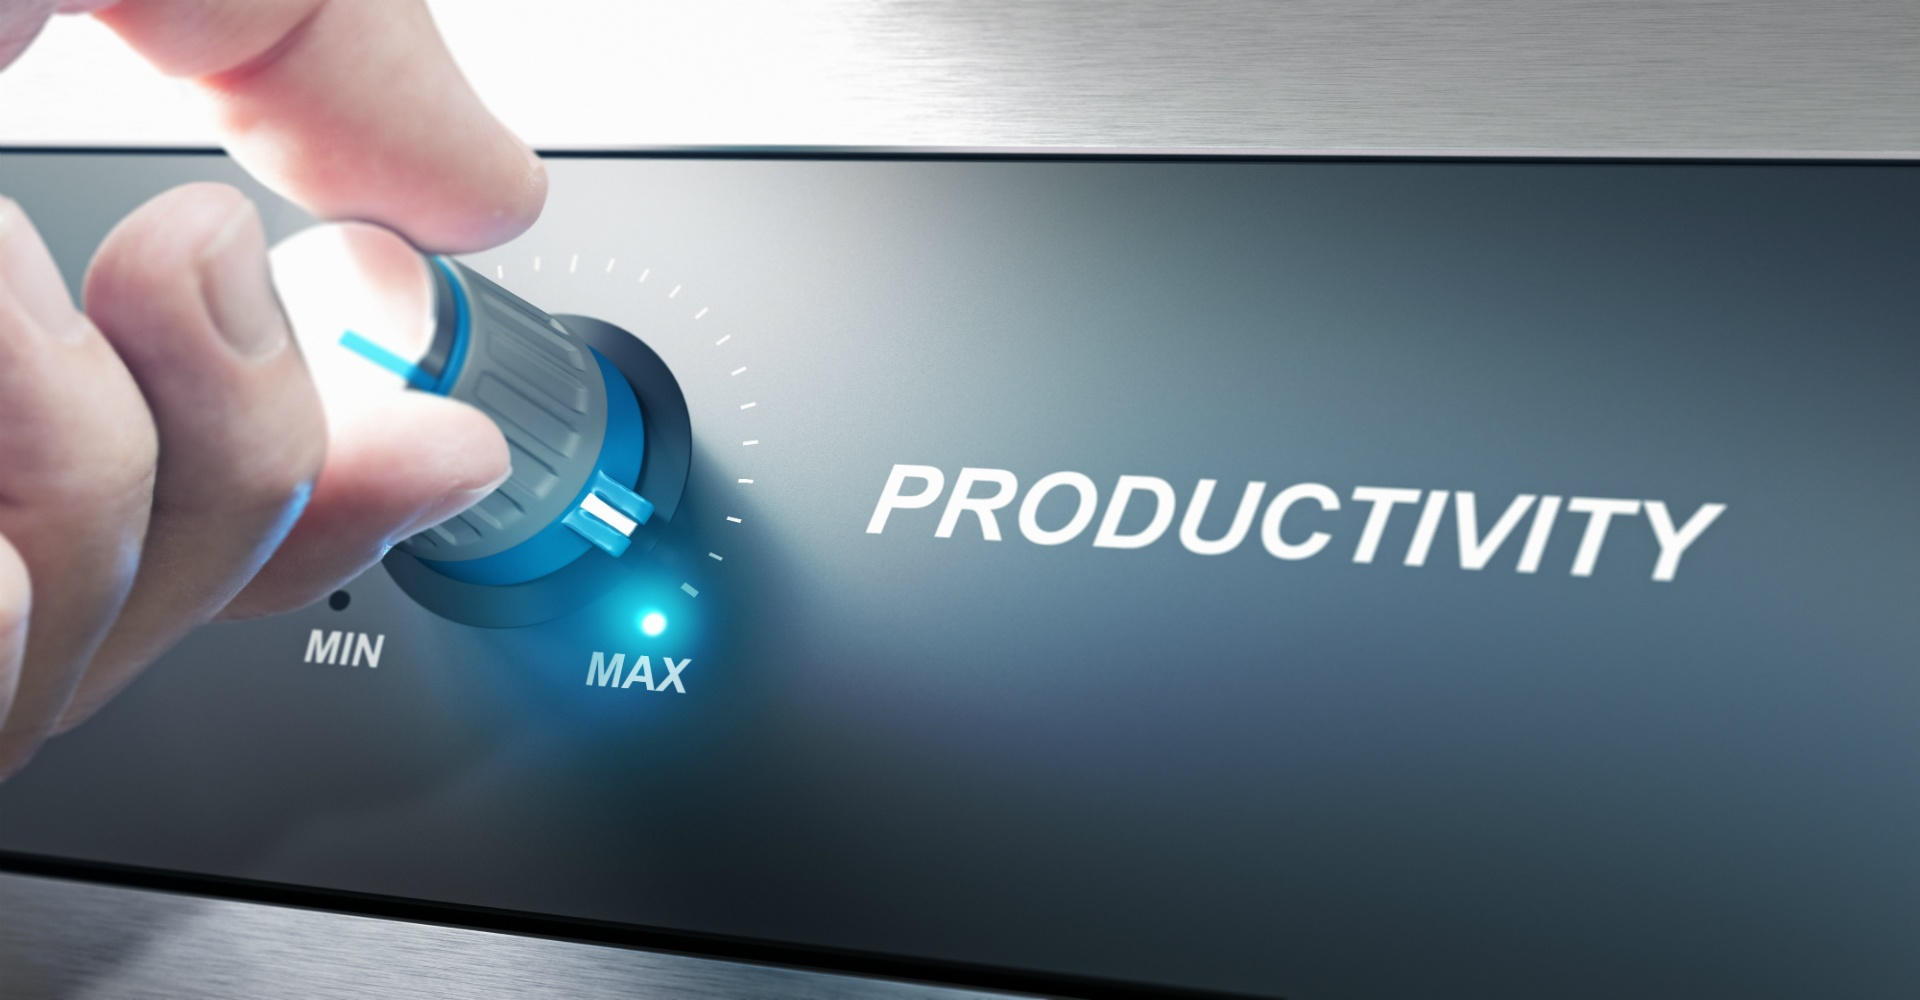 Try These 5 Technical Recruitment Tips to Boost Productivity